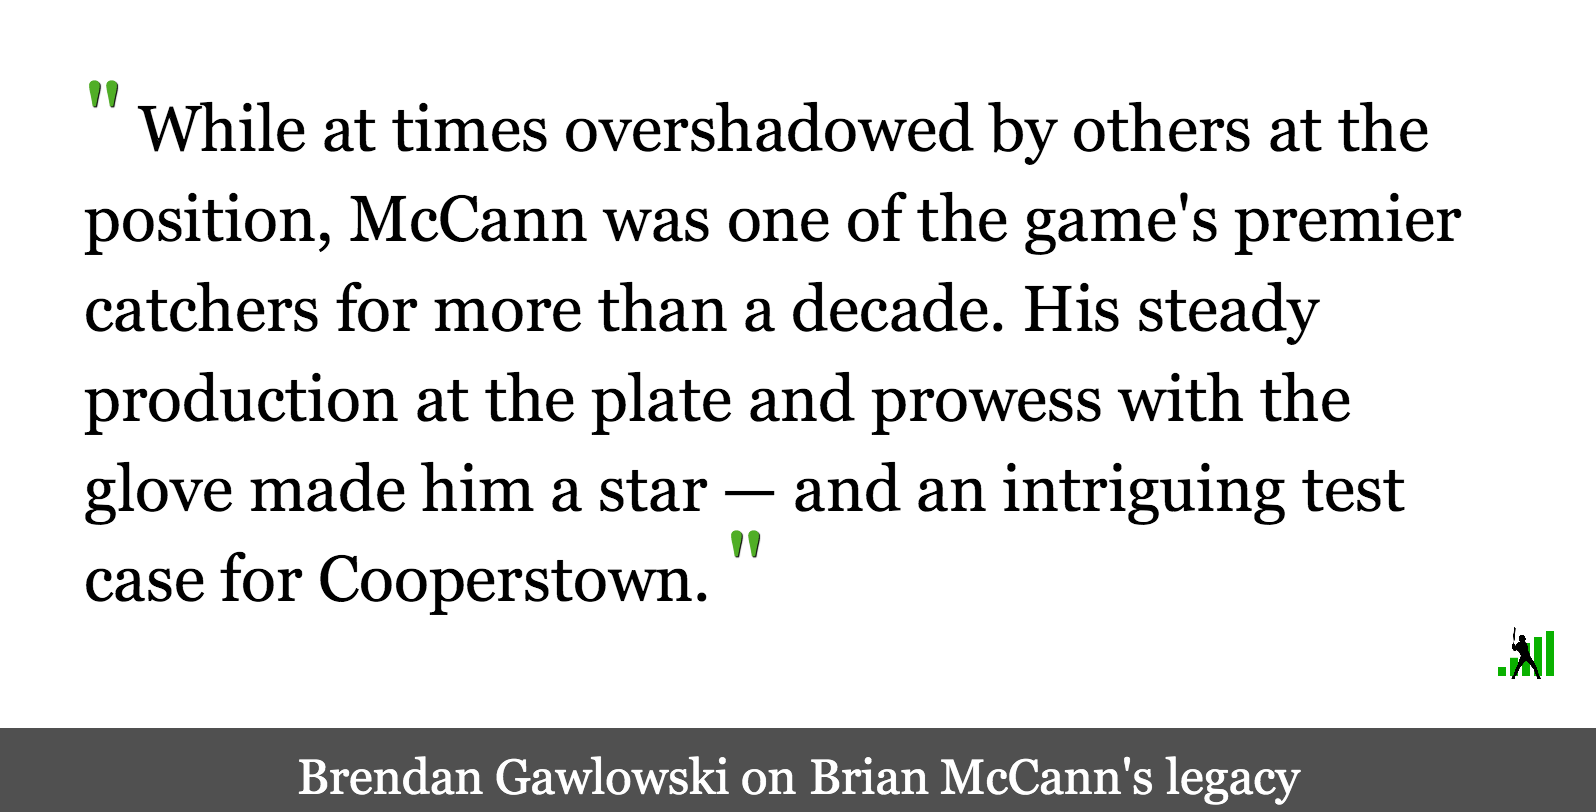 Brian McCann's Great Career and Fascinating Hall of Fame Case